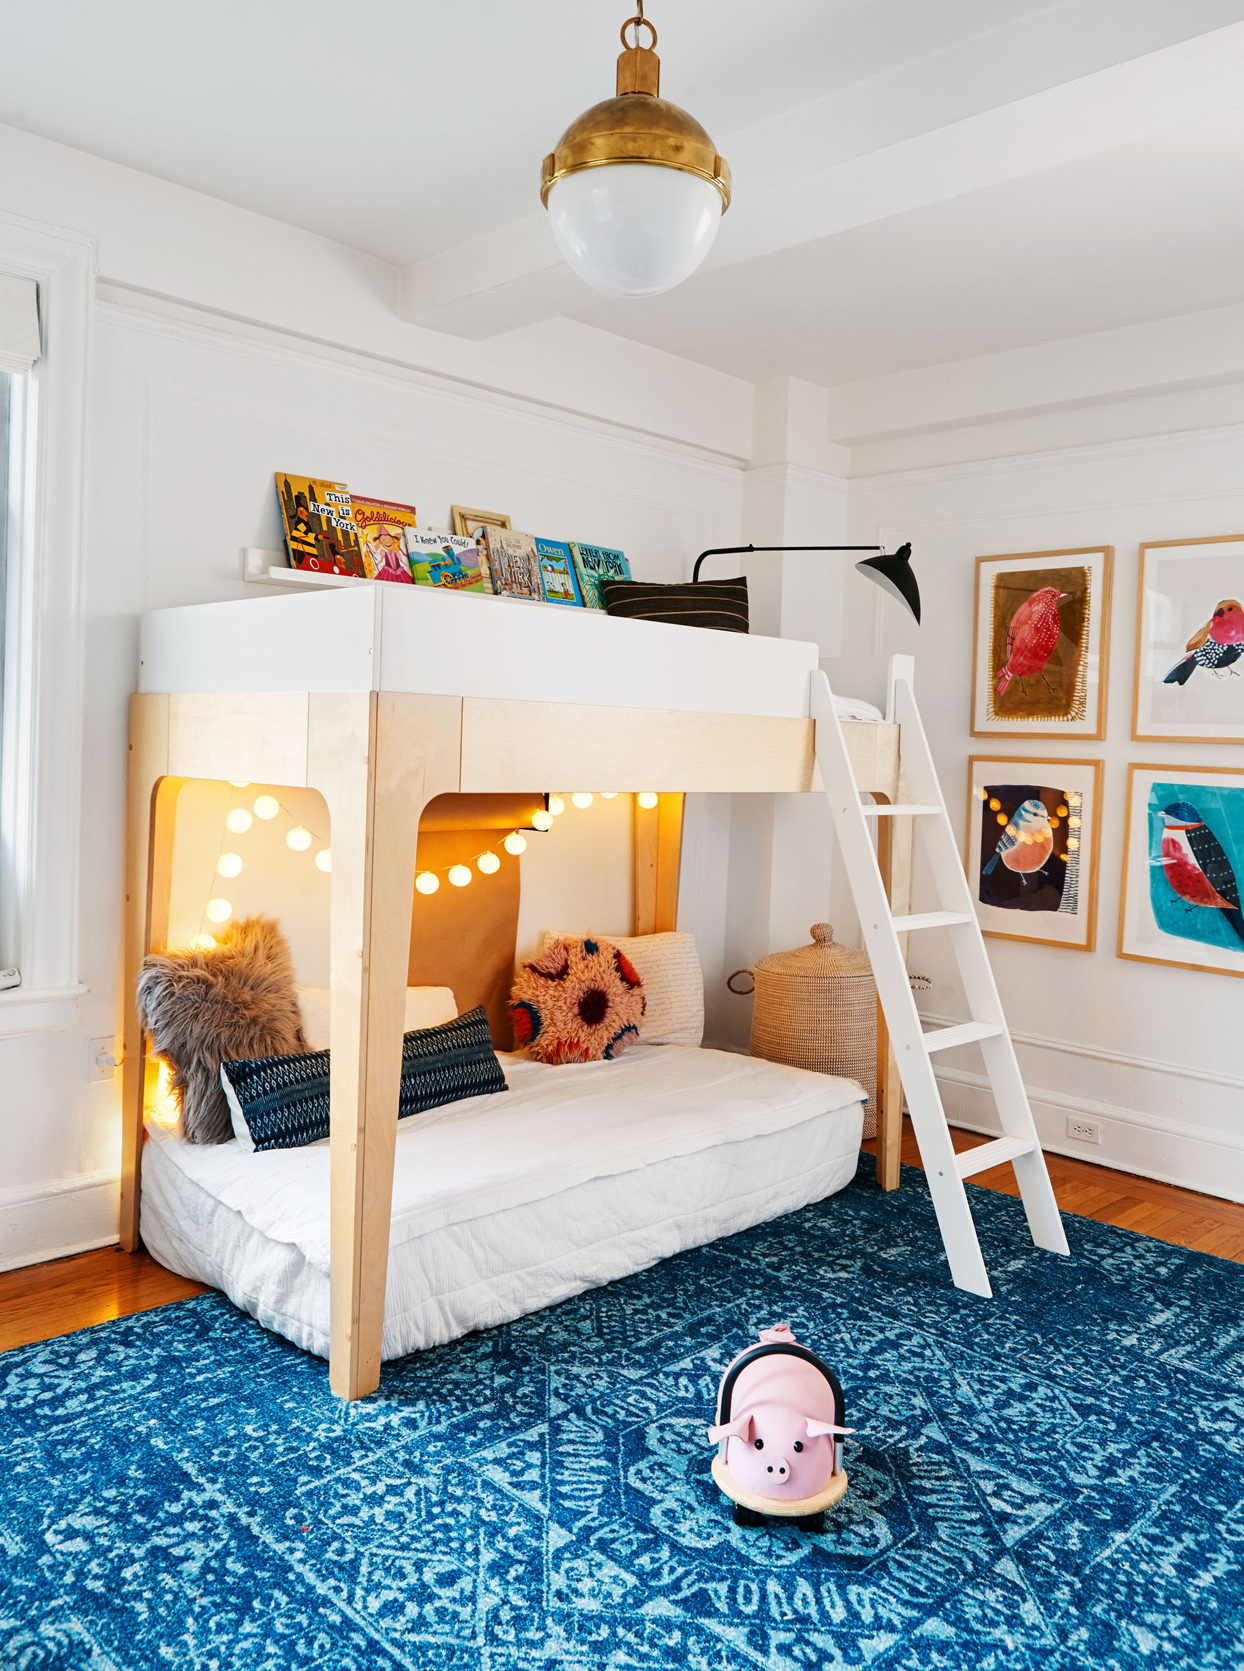 childrens bedroom with bunk beds and blue rug